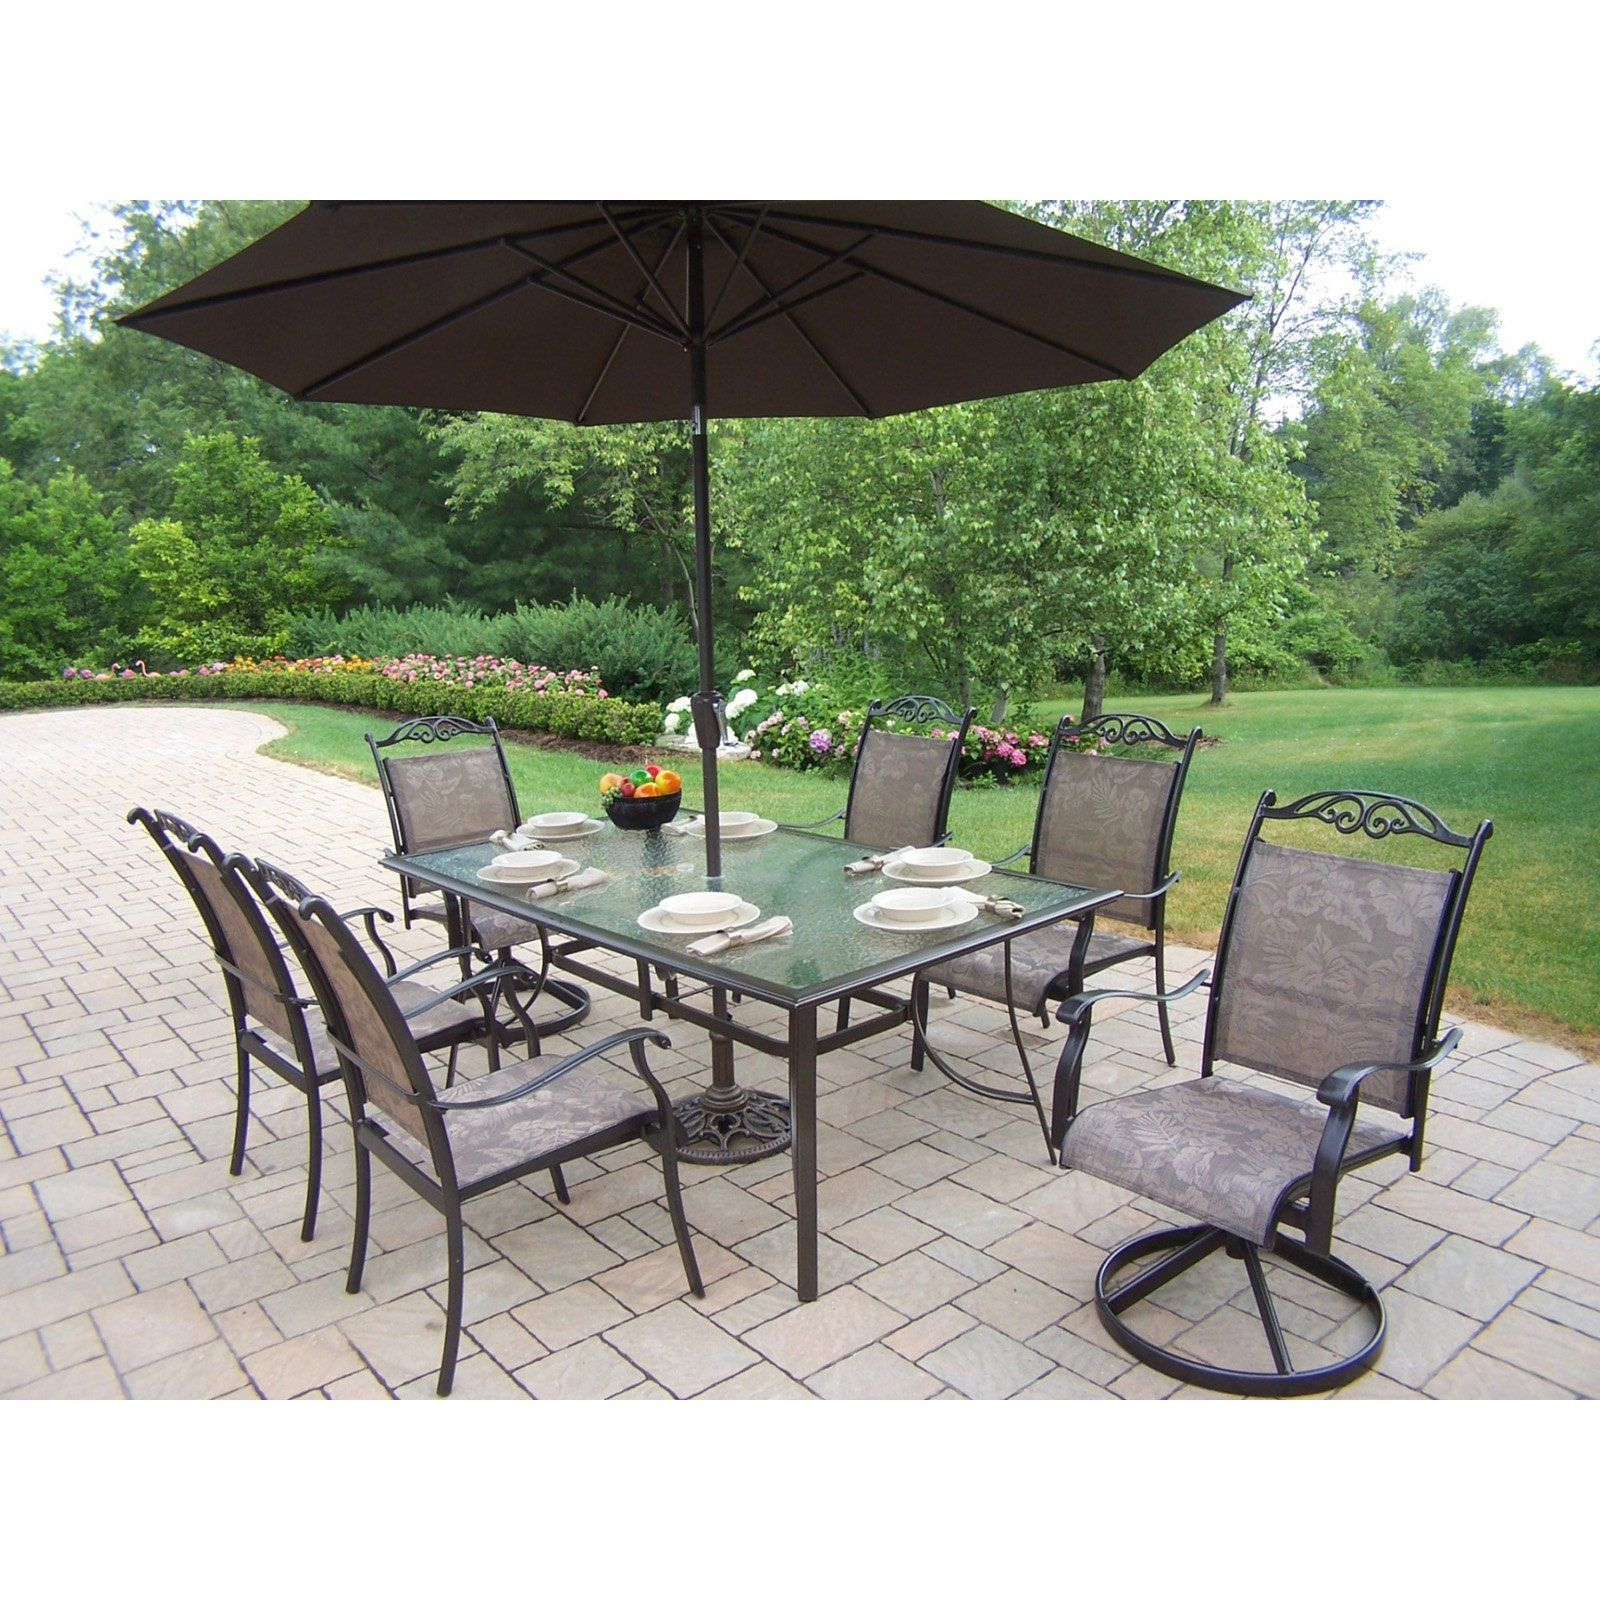 Outdoor Oakland Living Cascade Patio Dining Set With Umbrella And